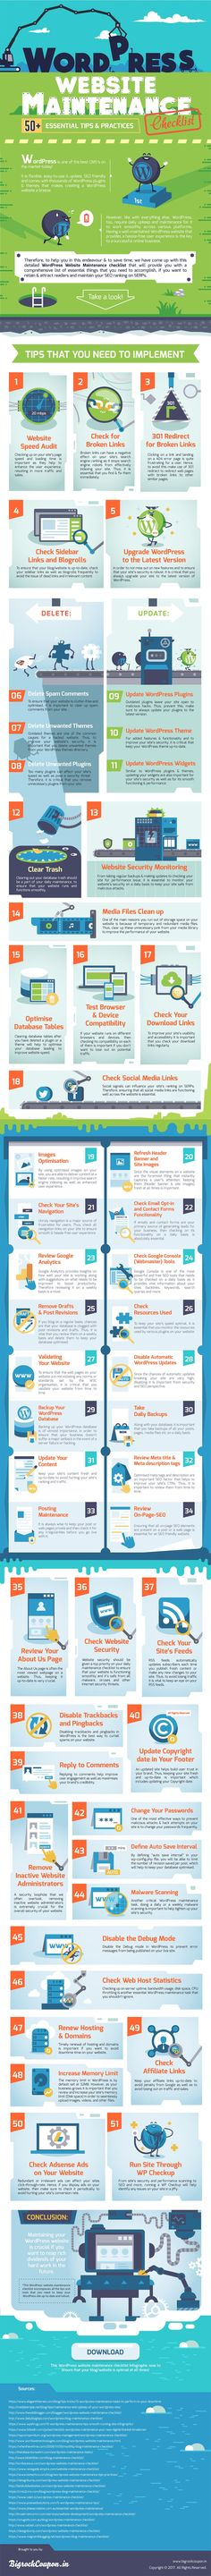 WordPress Website Maintenance Checklist #Infographic #WordPress